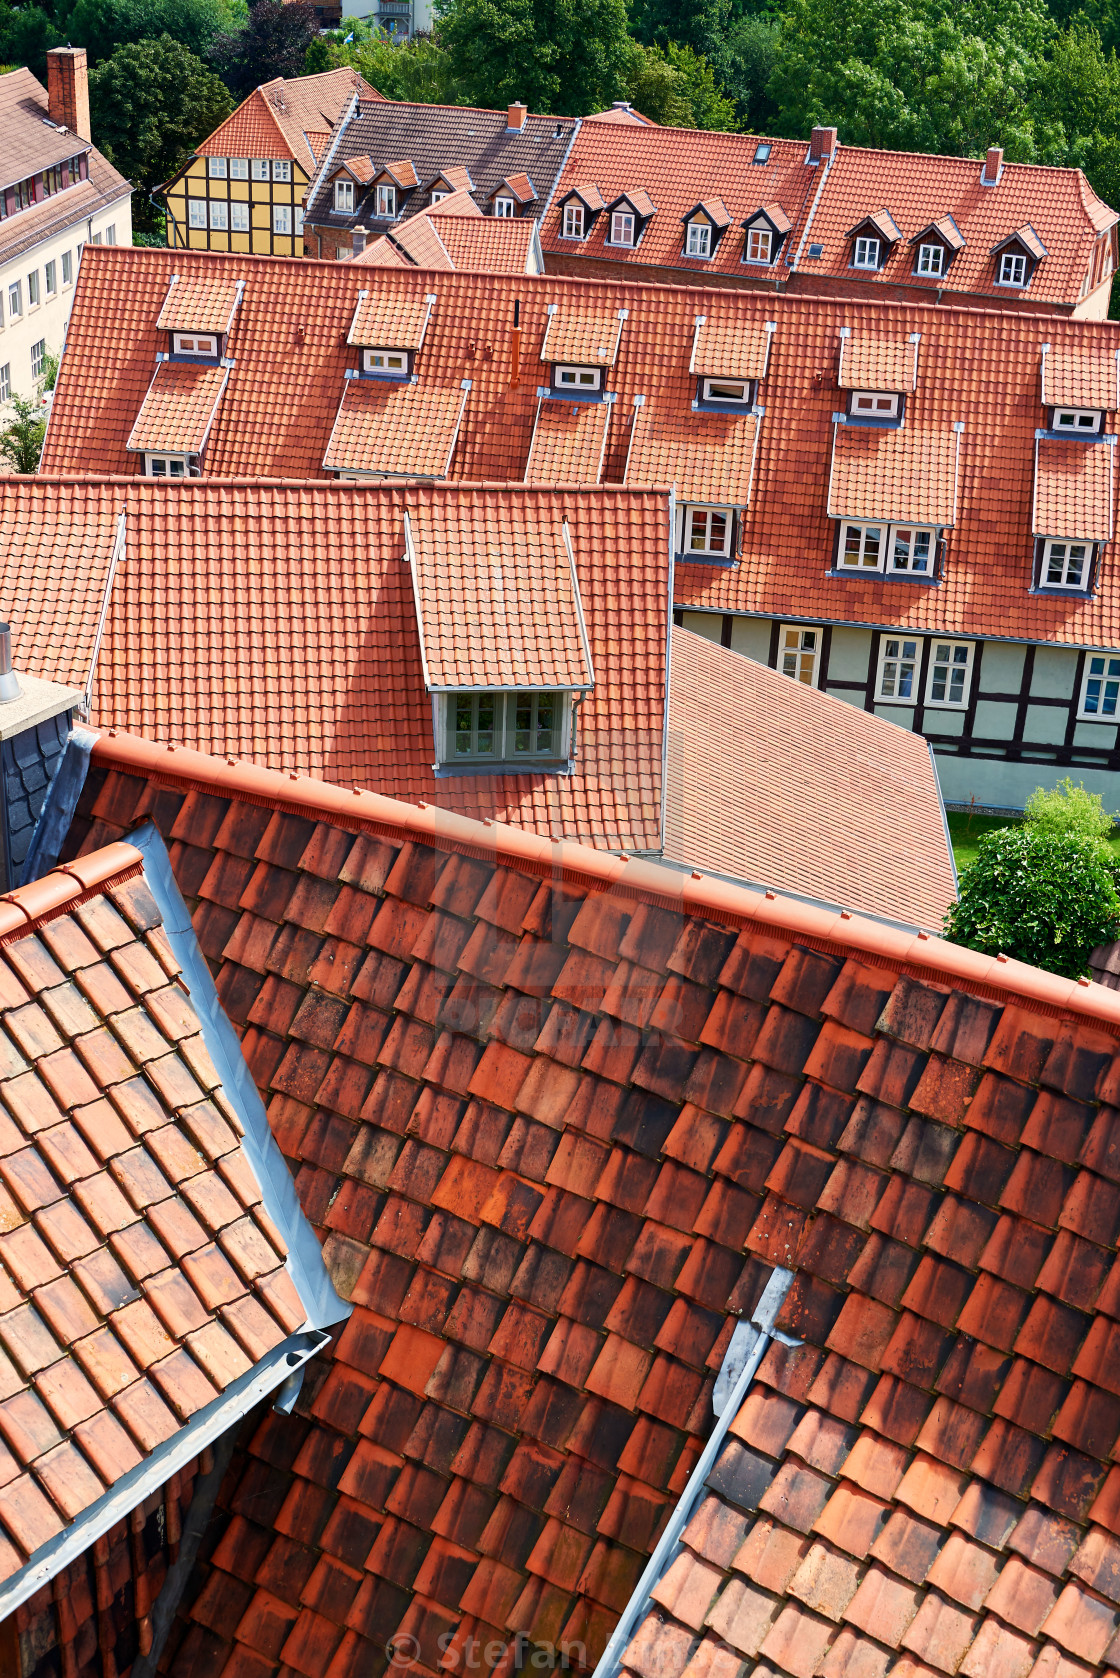 """top view on medieval town with red roof tiles"" stock image"